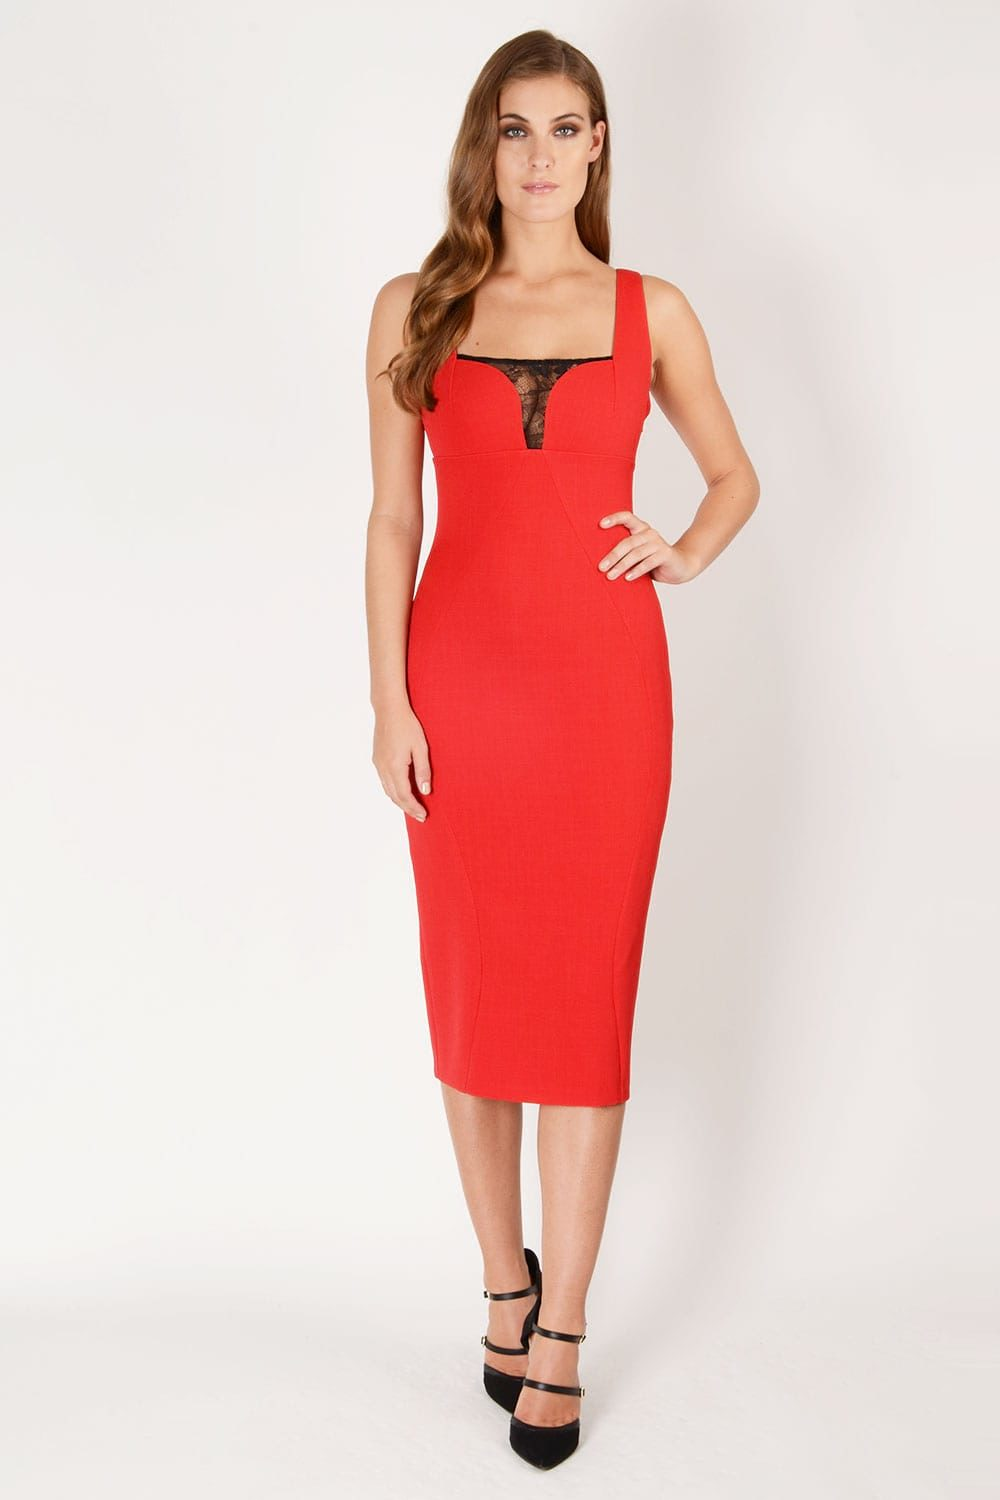 Hybrid Fashion 1229 Erin Lace Insert Midi Dress